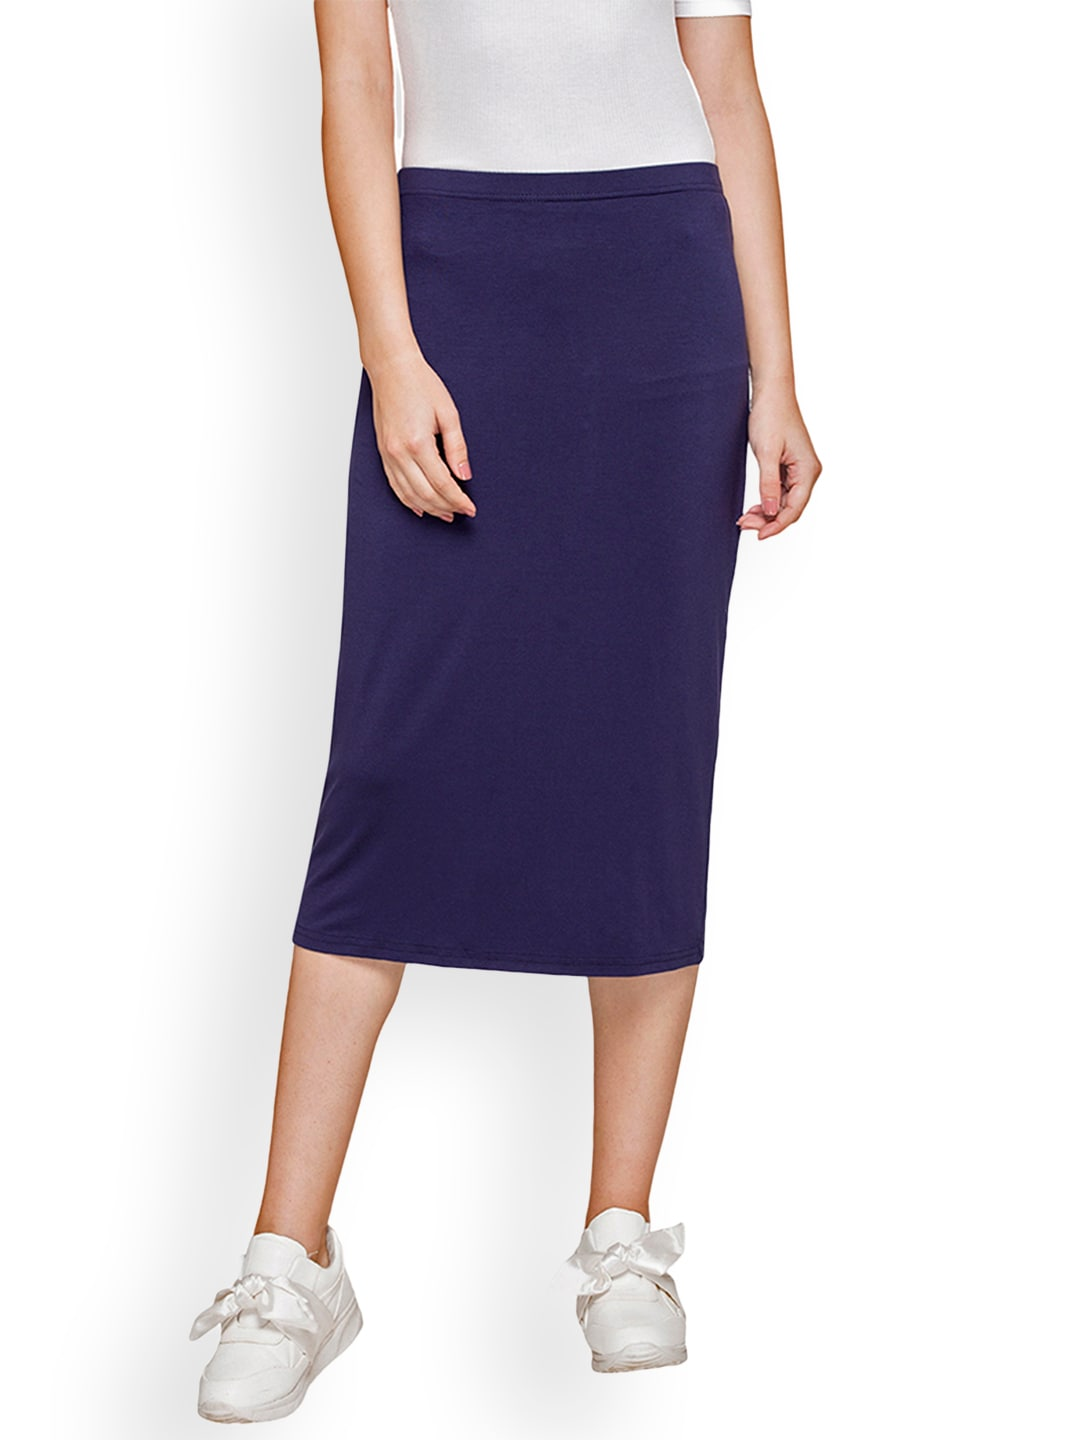 800a006503 Globus Skirts - Buy Globus Skirts online in India